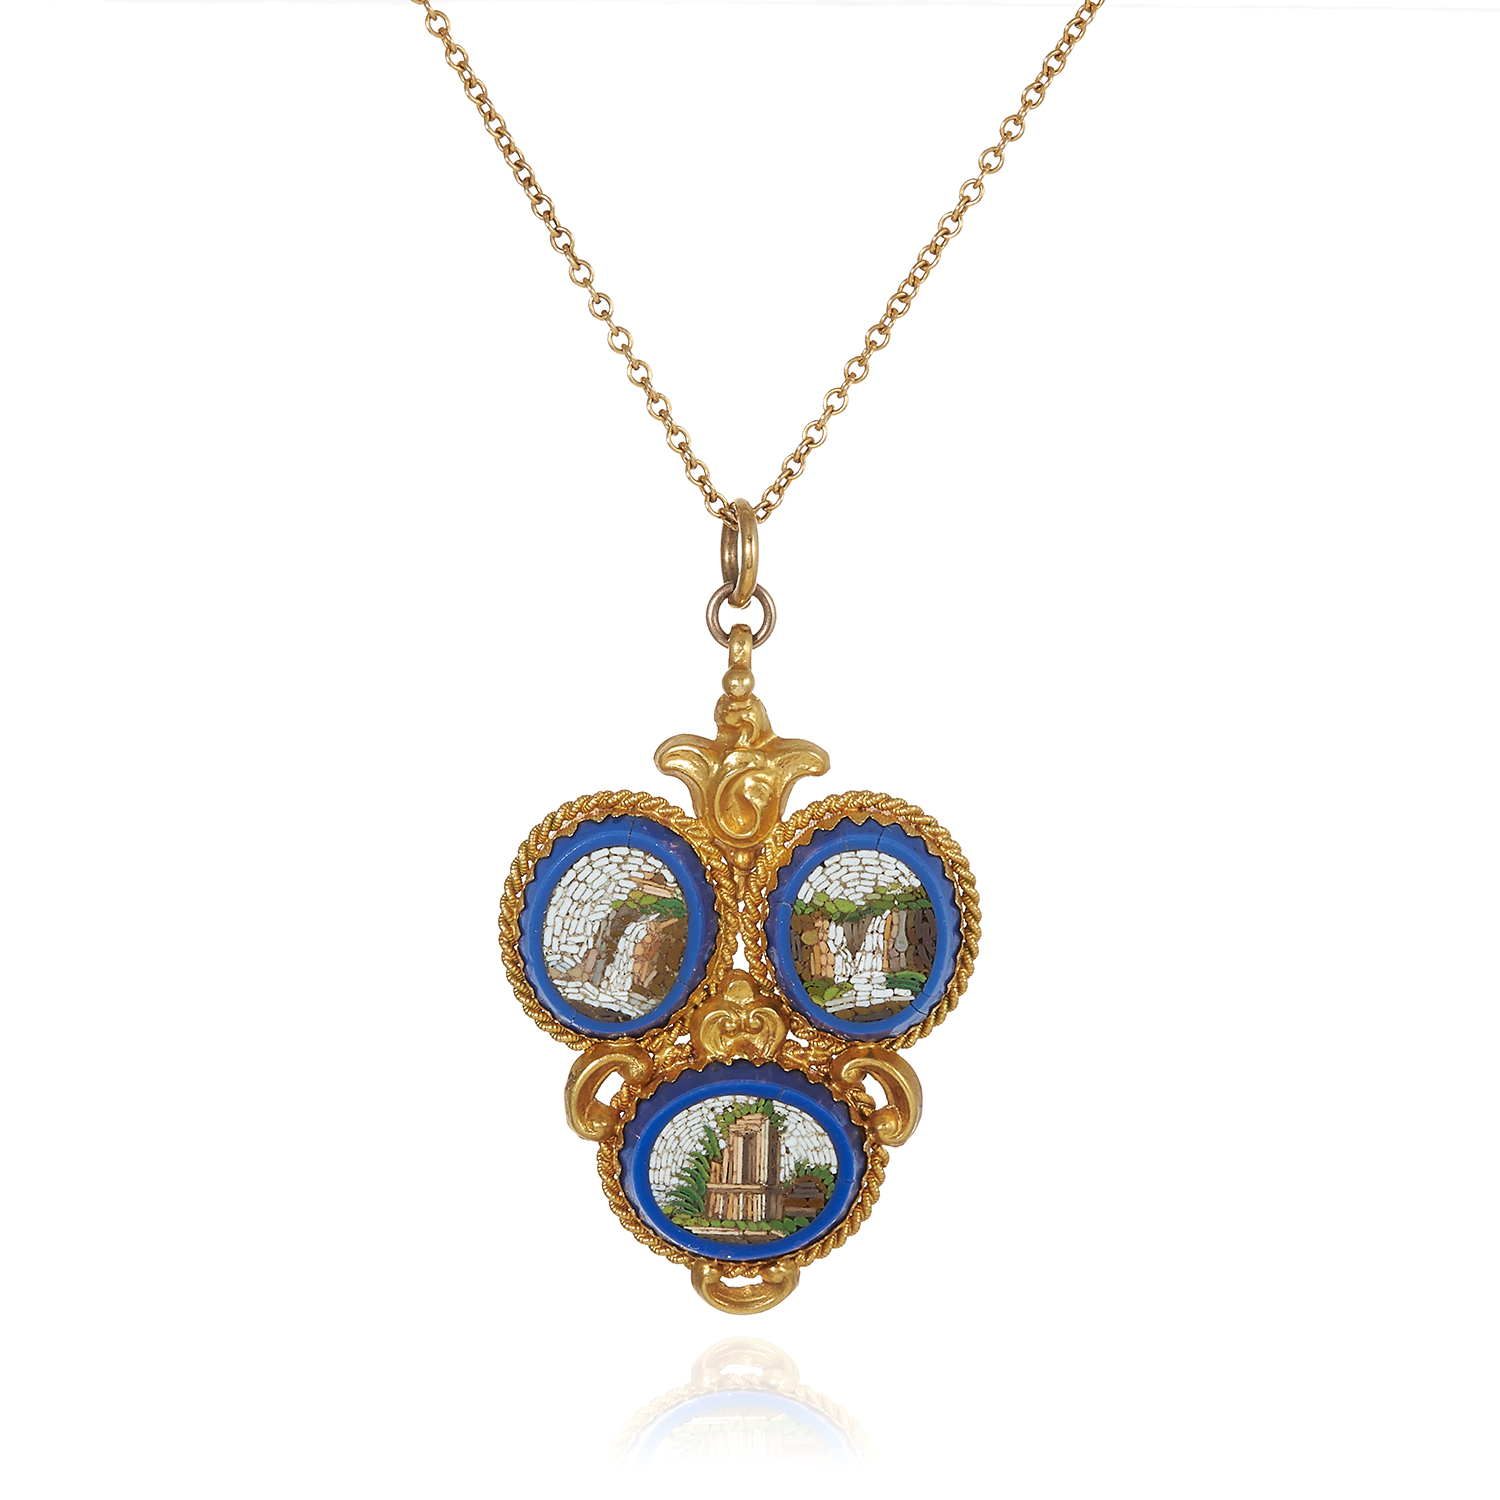 Los 35 - AN ANTIQUE MICROMOSAIC PENDANT, 19TH CENTURY in high carat yellow gold, formed of a trio of